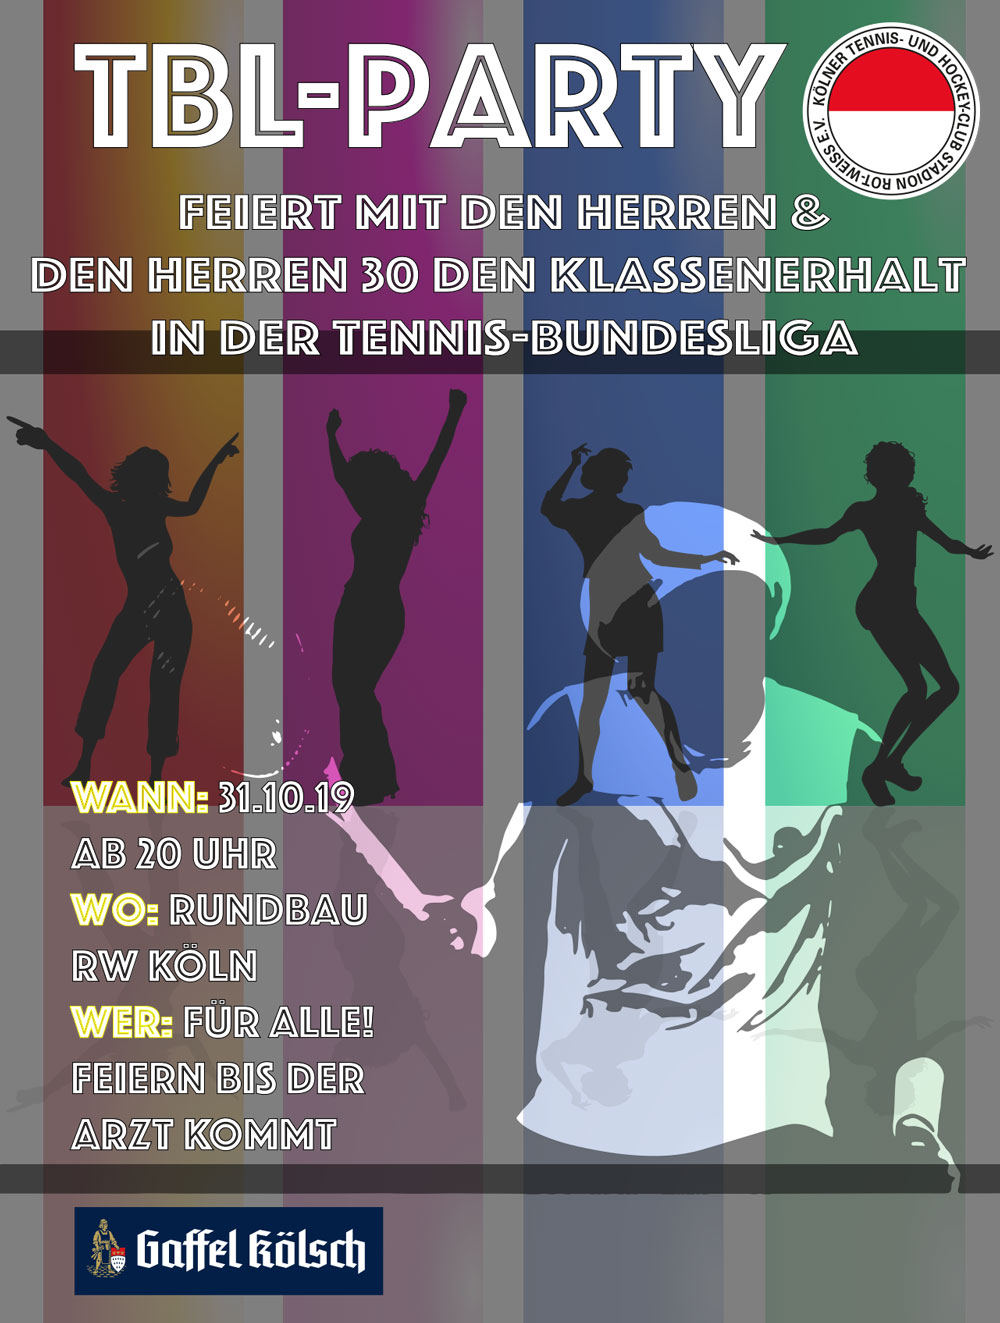 Reminder - Partytime am 31.10. - TBL Paqrty